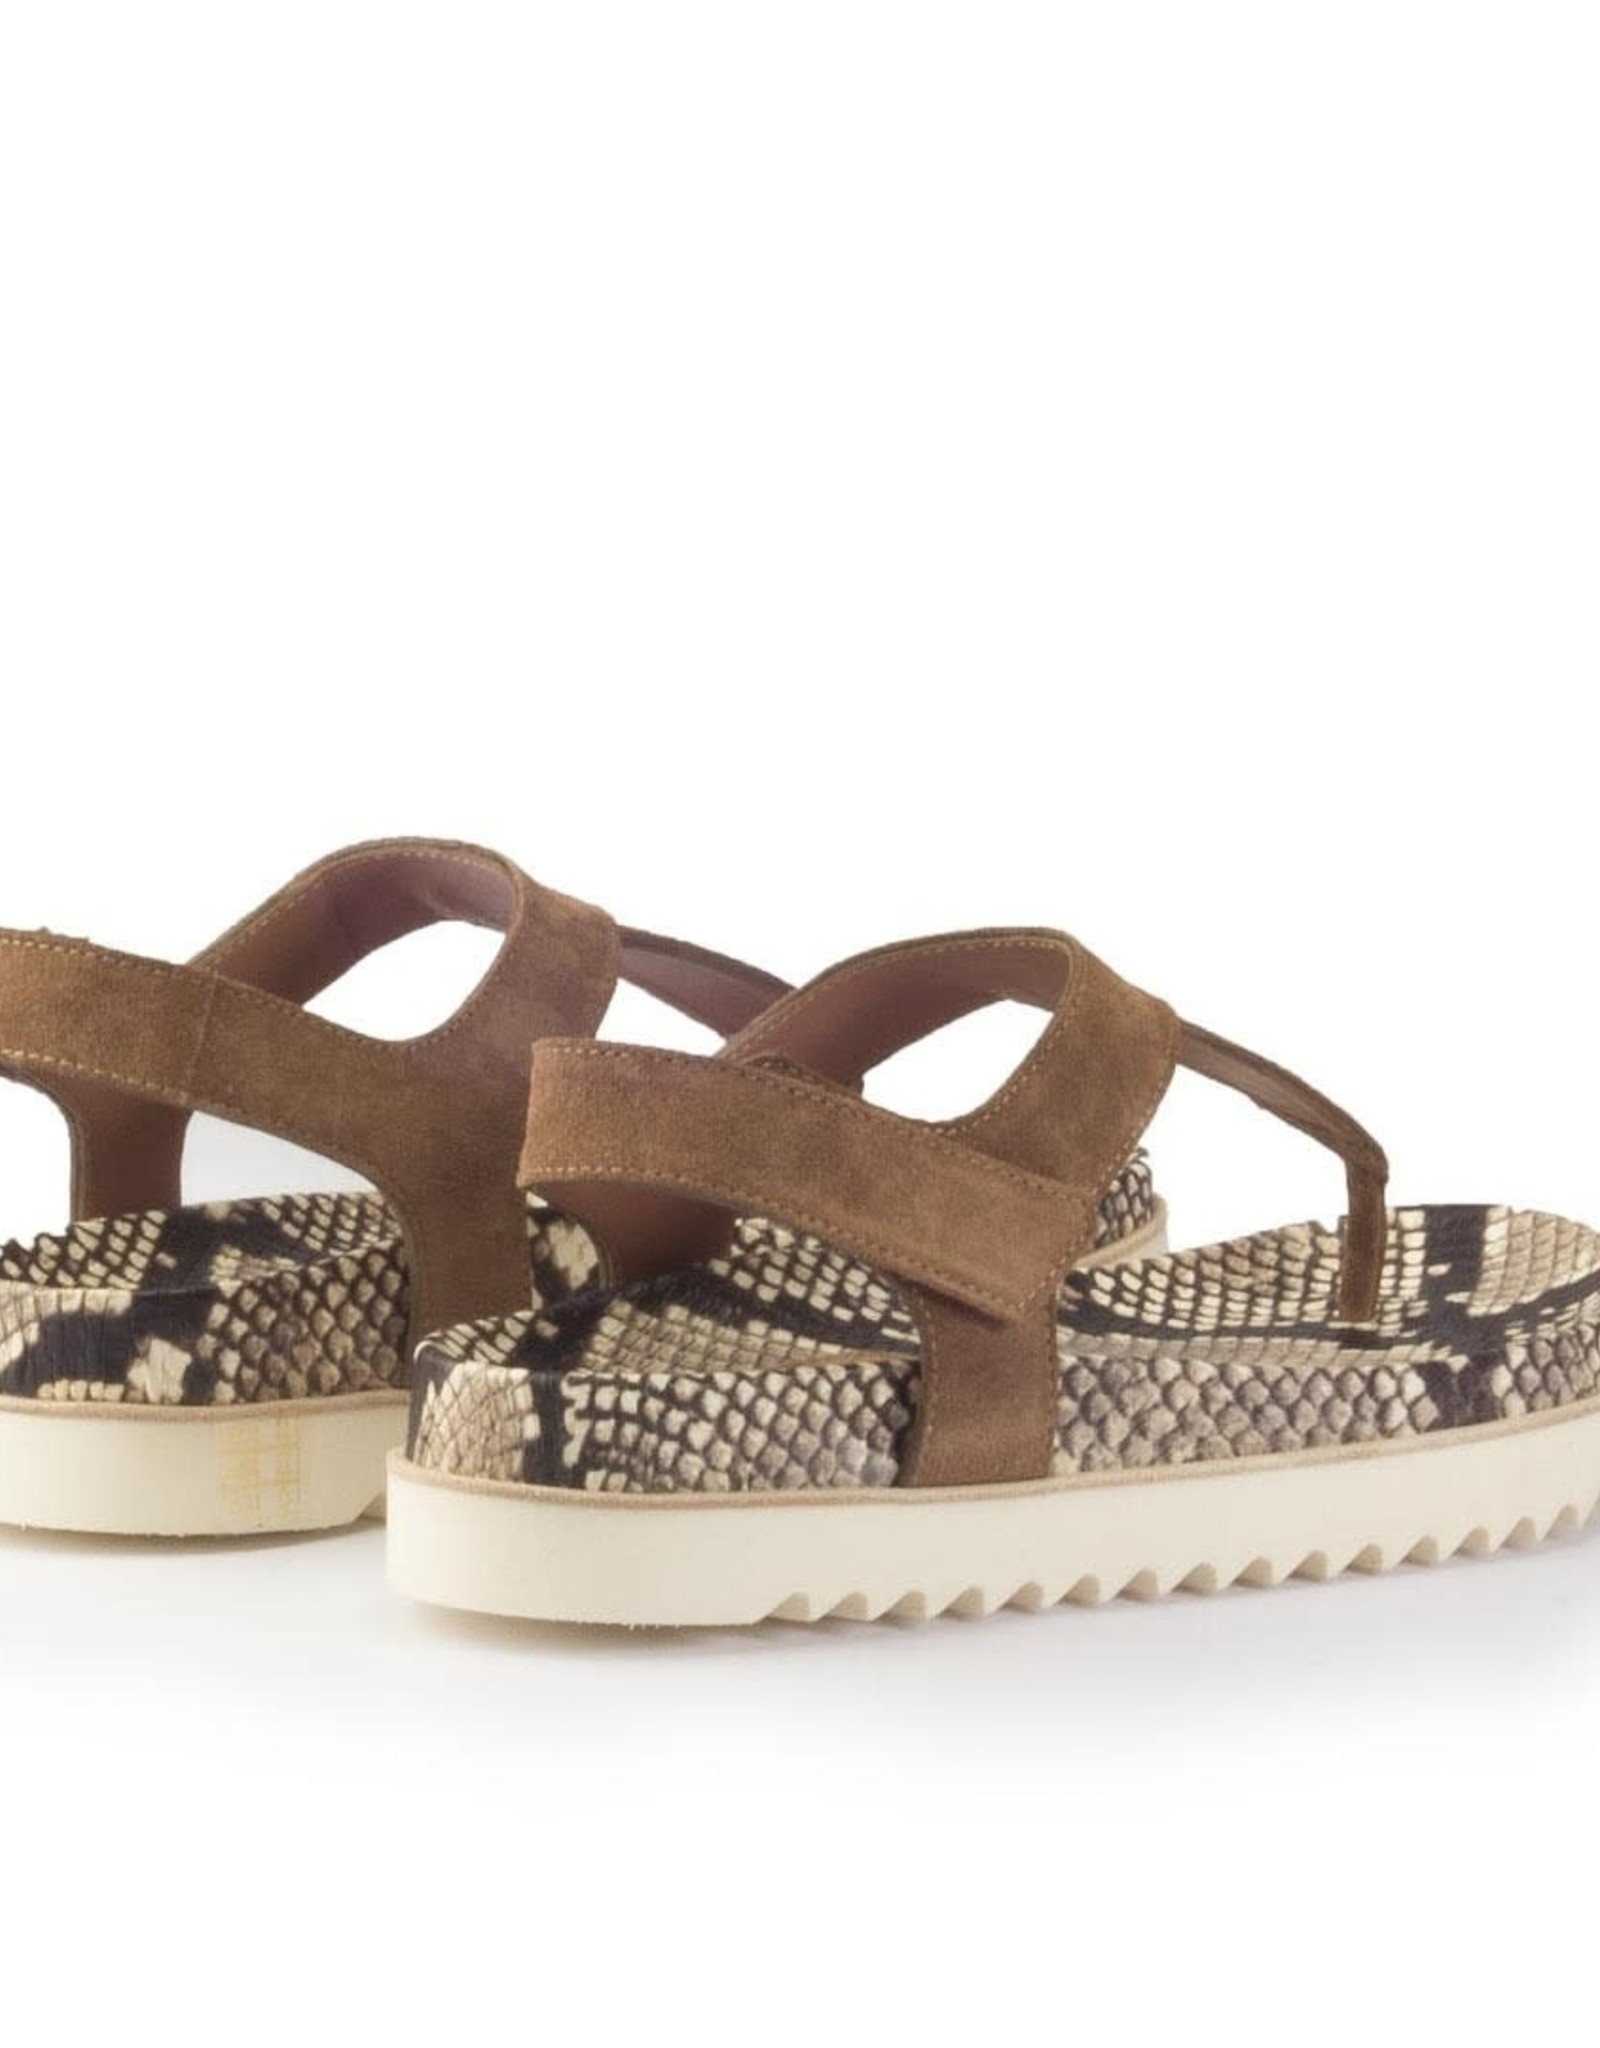 HOMERS - Crosta Sandal